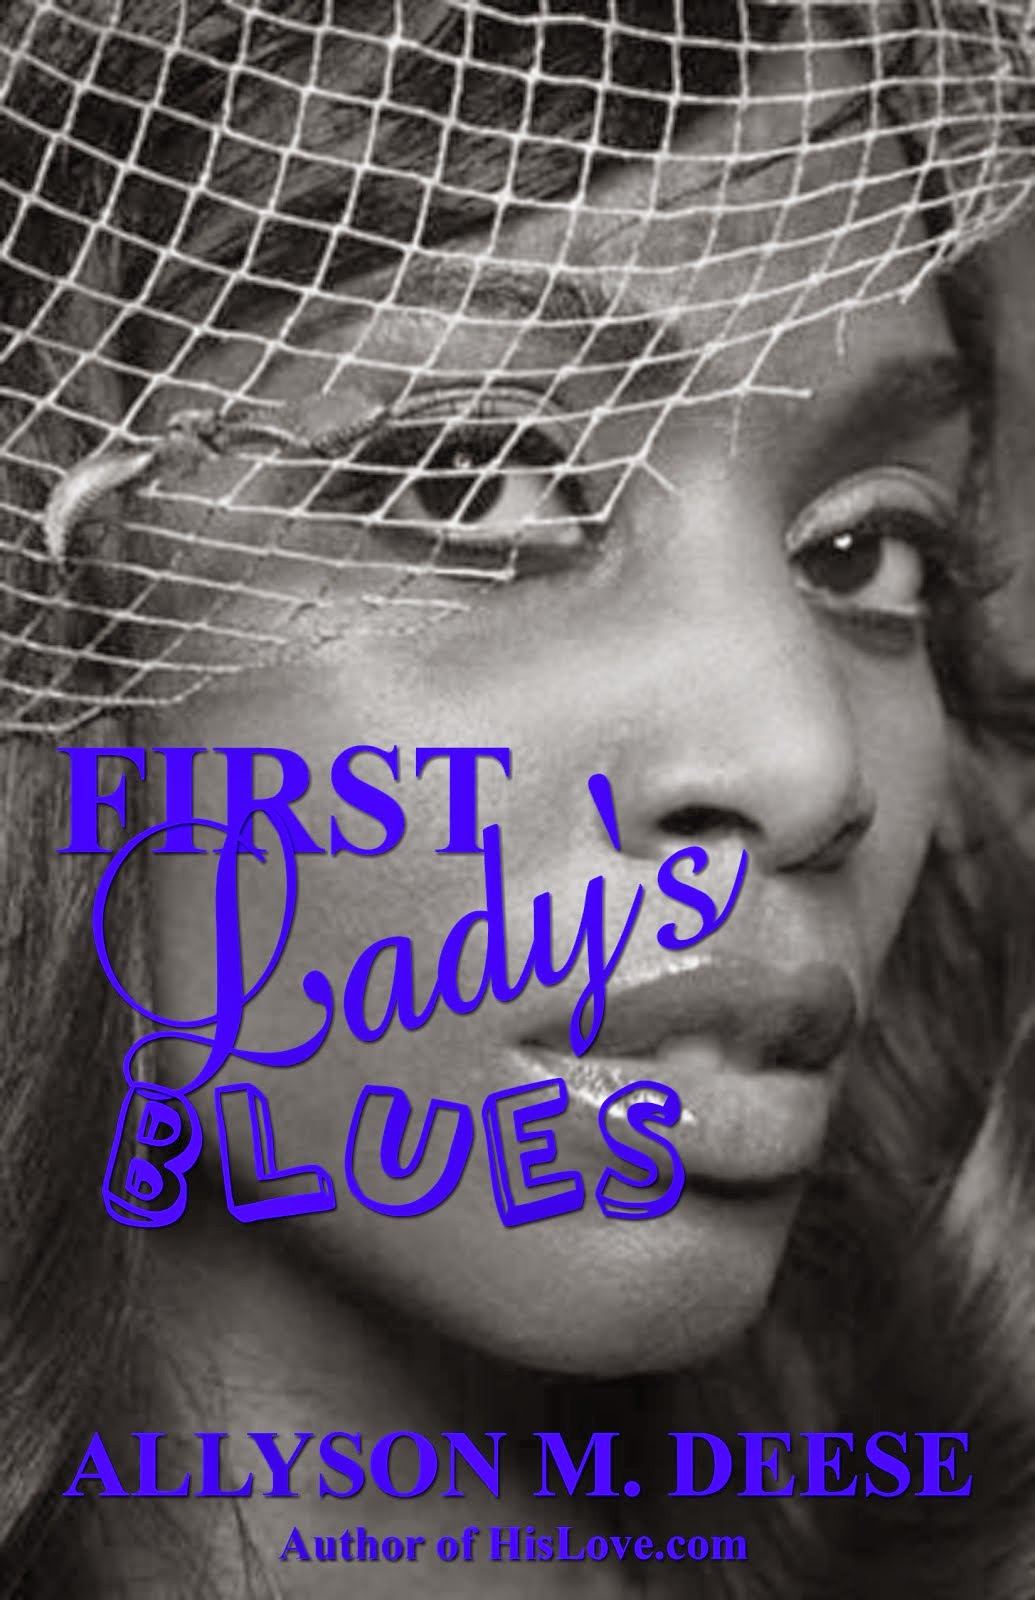 First Lady's Blues